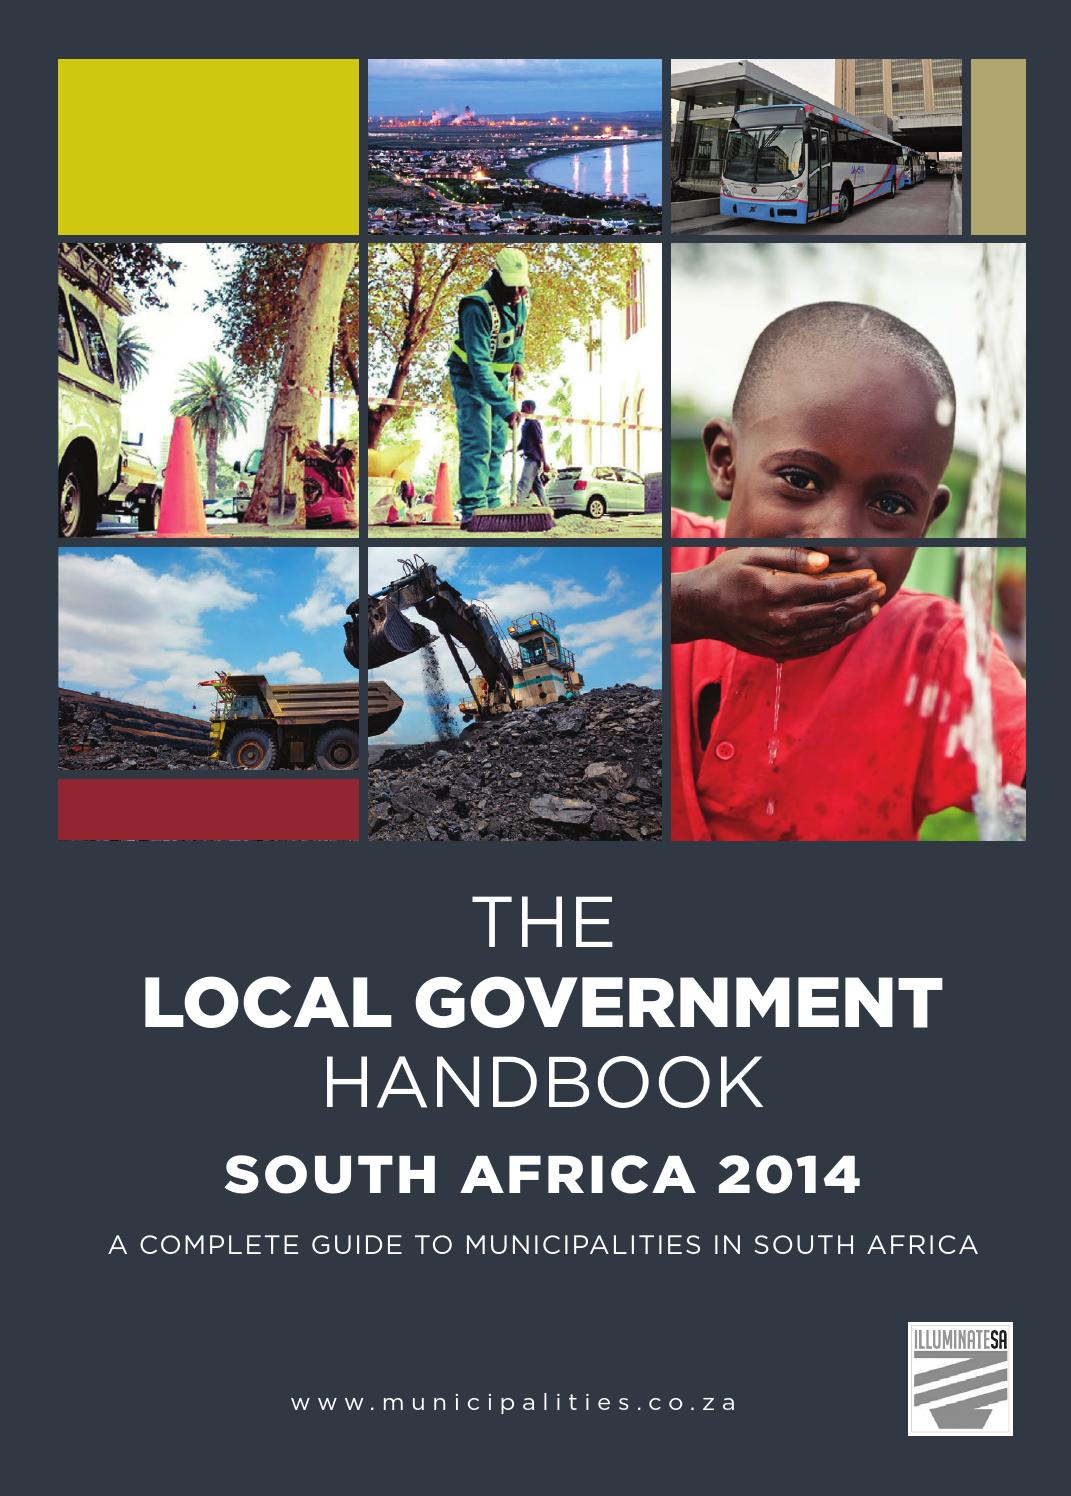 Local Government Handbook - South Africa 2014 by Yes Media